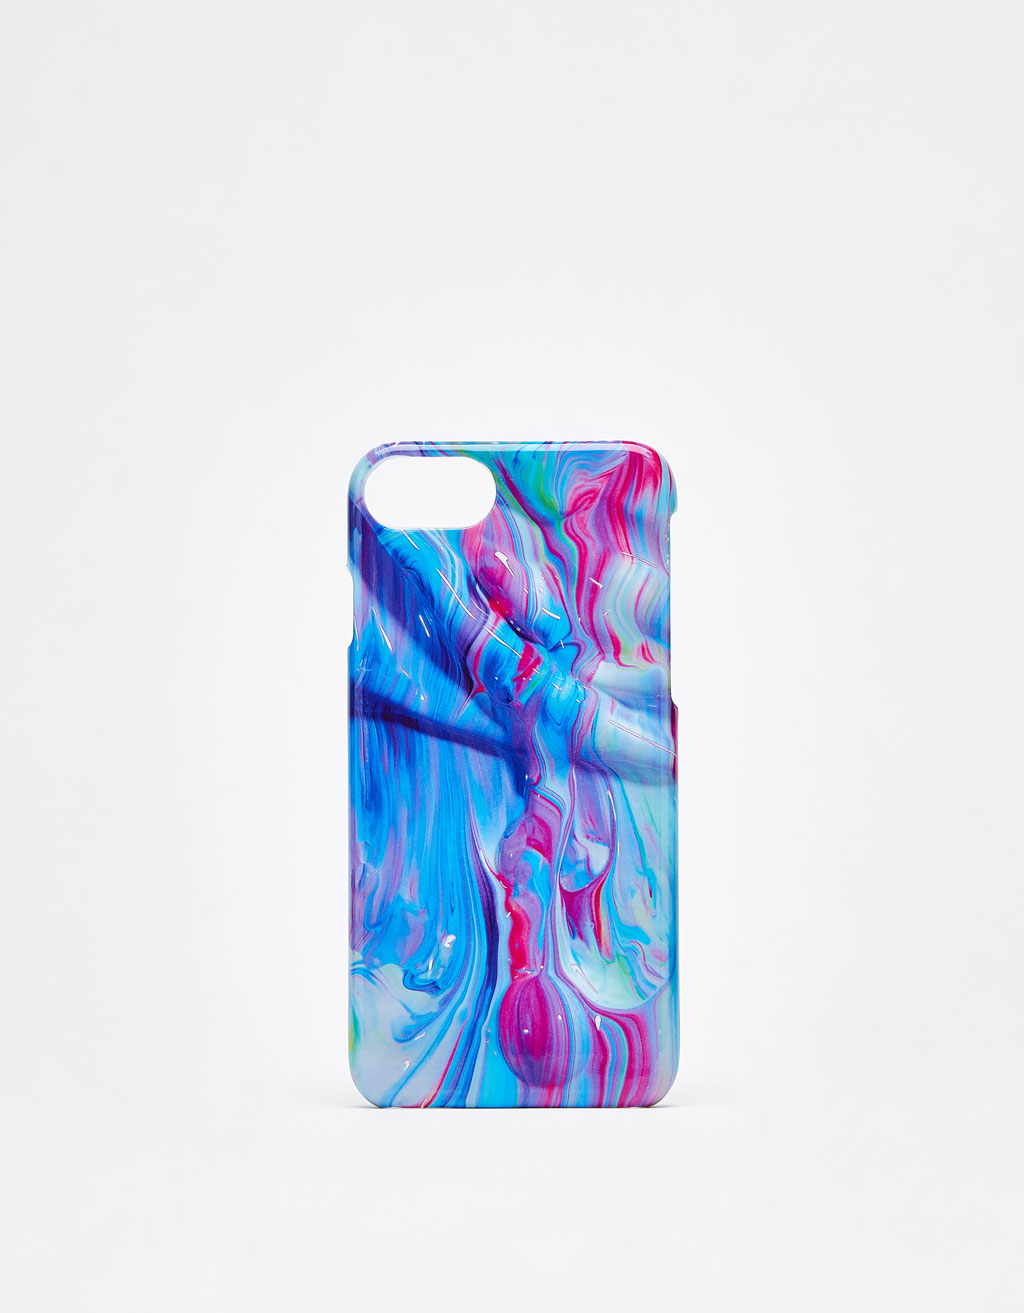 Coque aquarelle iPhone 6/6s/7/8